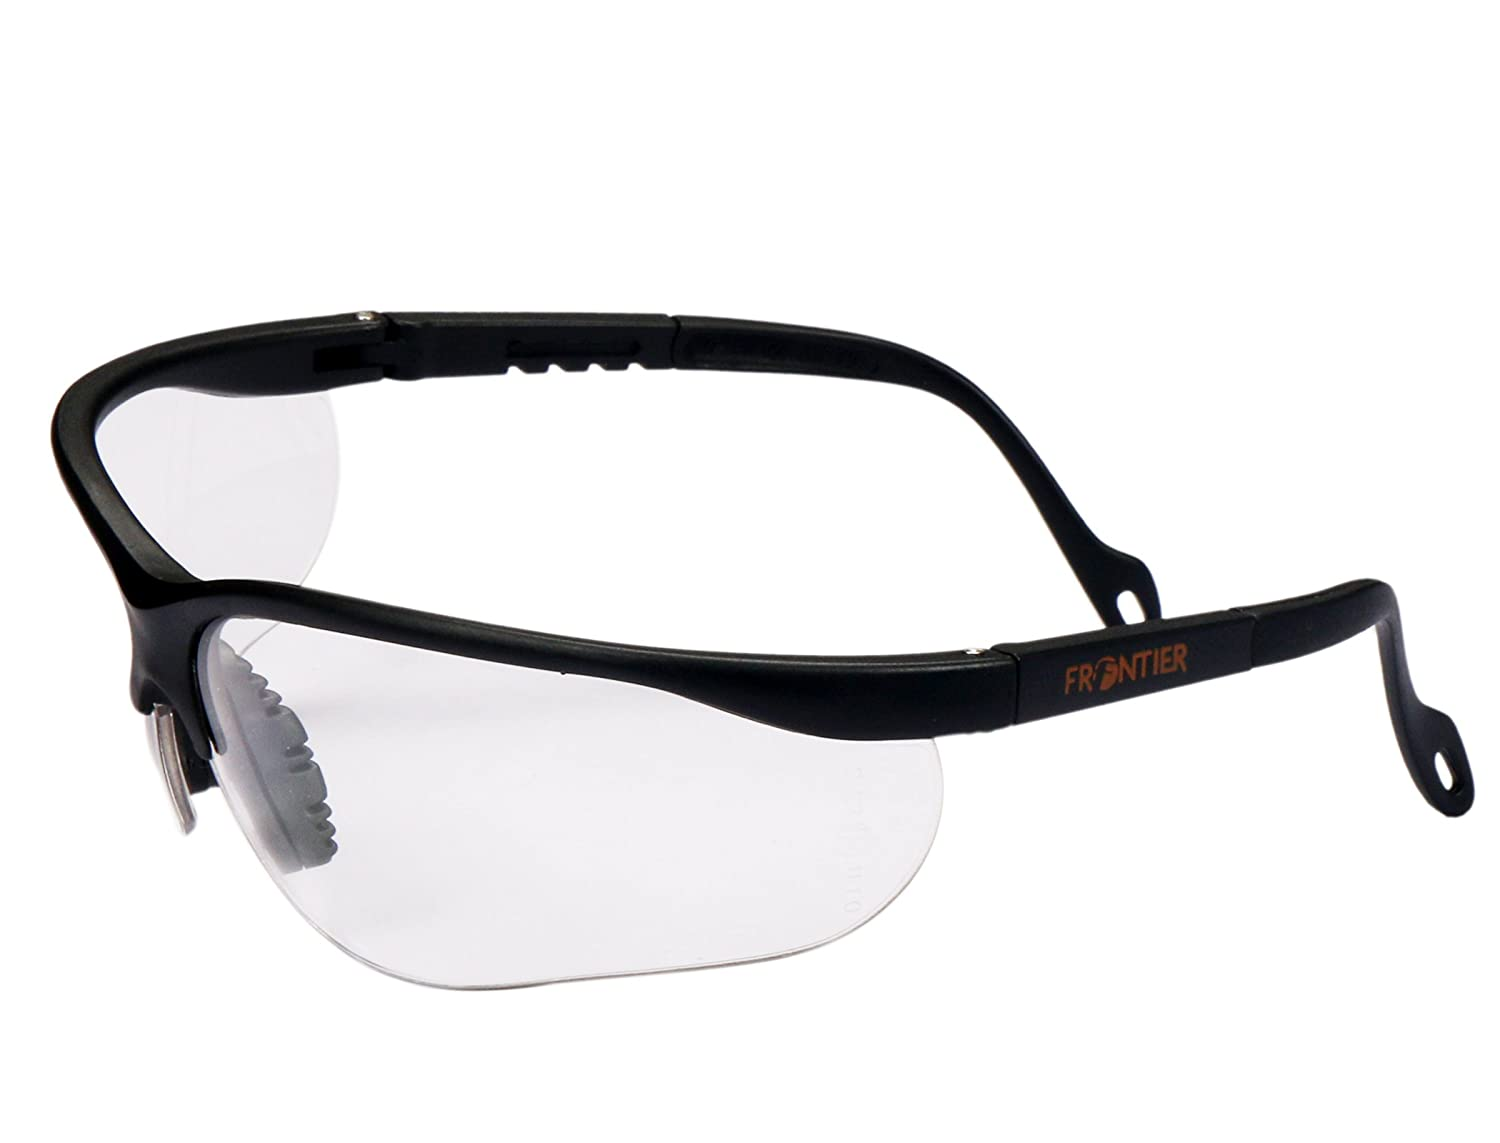 9c5cd37db1e Frontier (Midas Safety) Hurricane Clear Safety Glasses with Adjustable  Temple  Amazon.in  Amazon.in